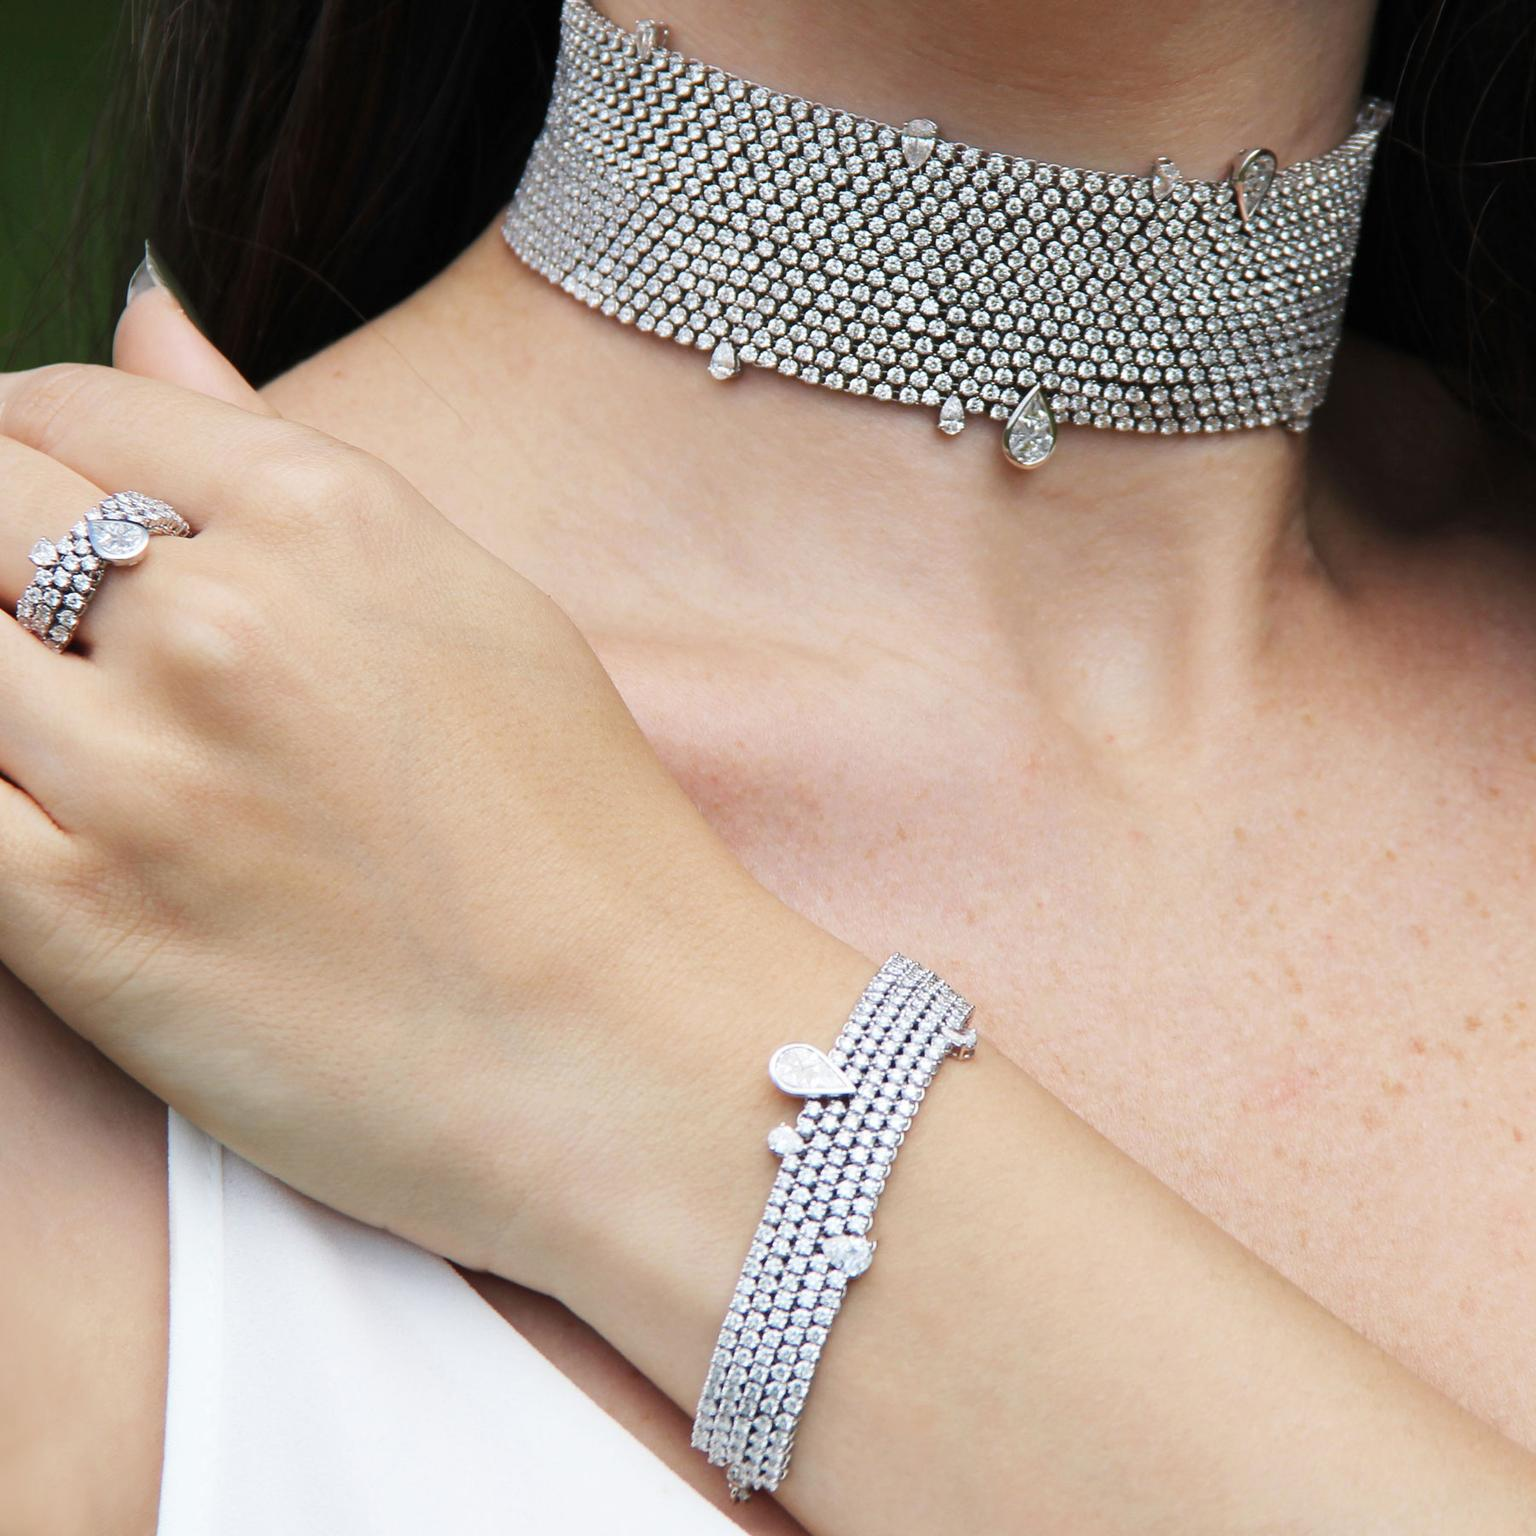 Stenzhorn Cowherd and the Weaver Girl diamond high jewellery choker